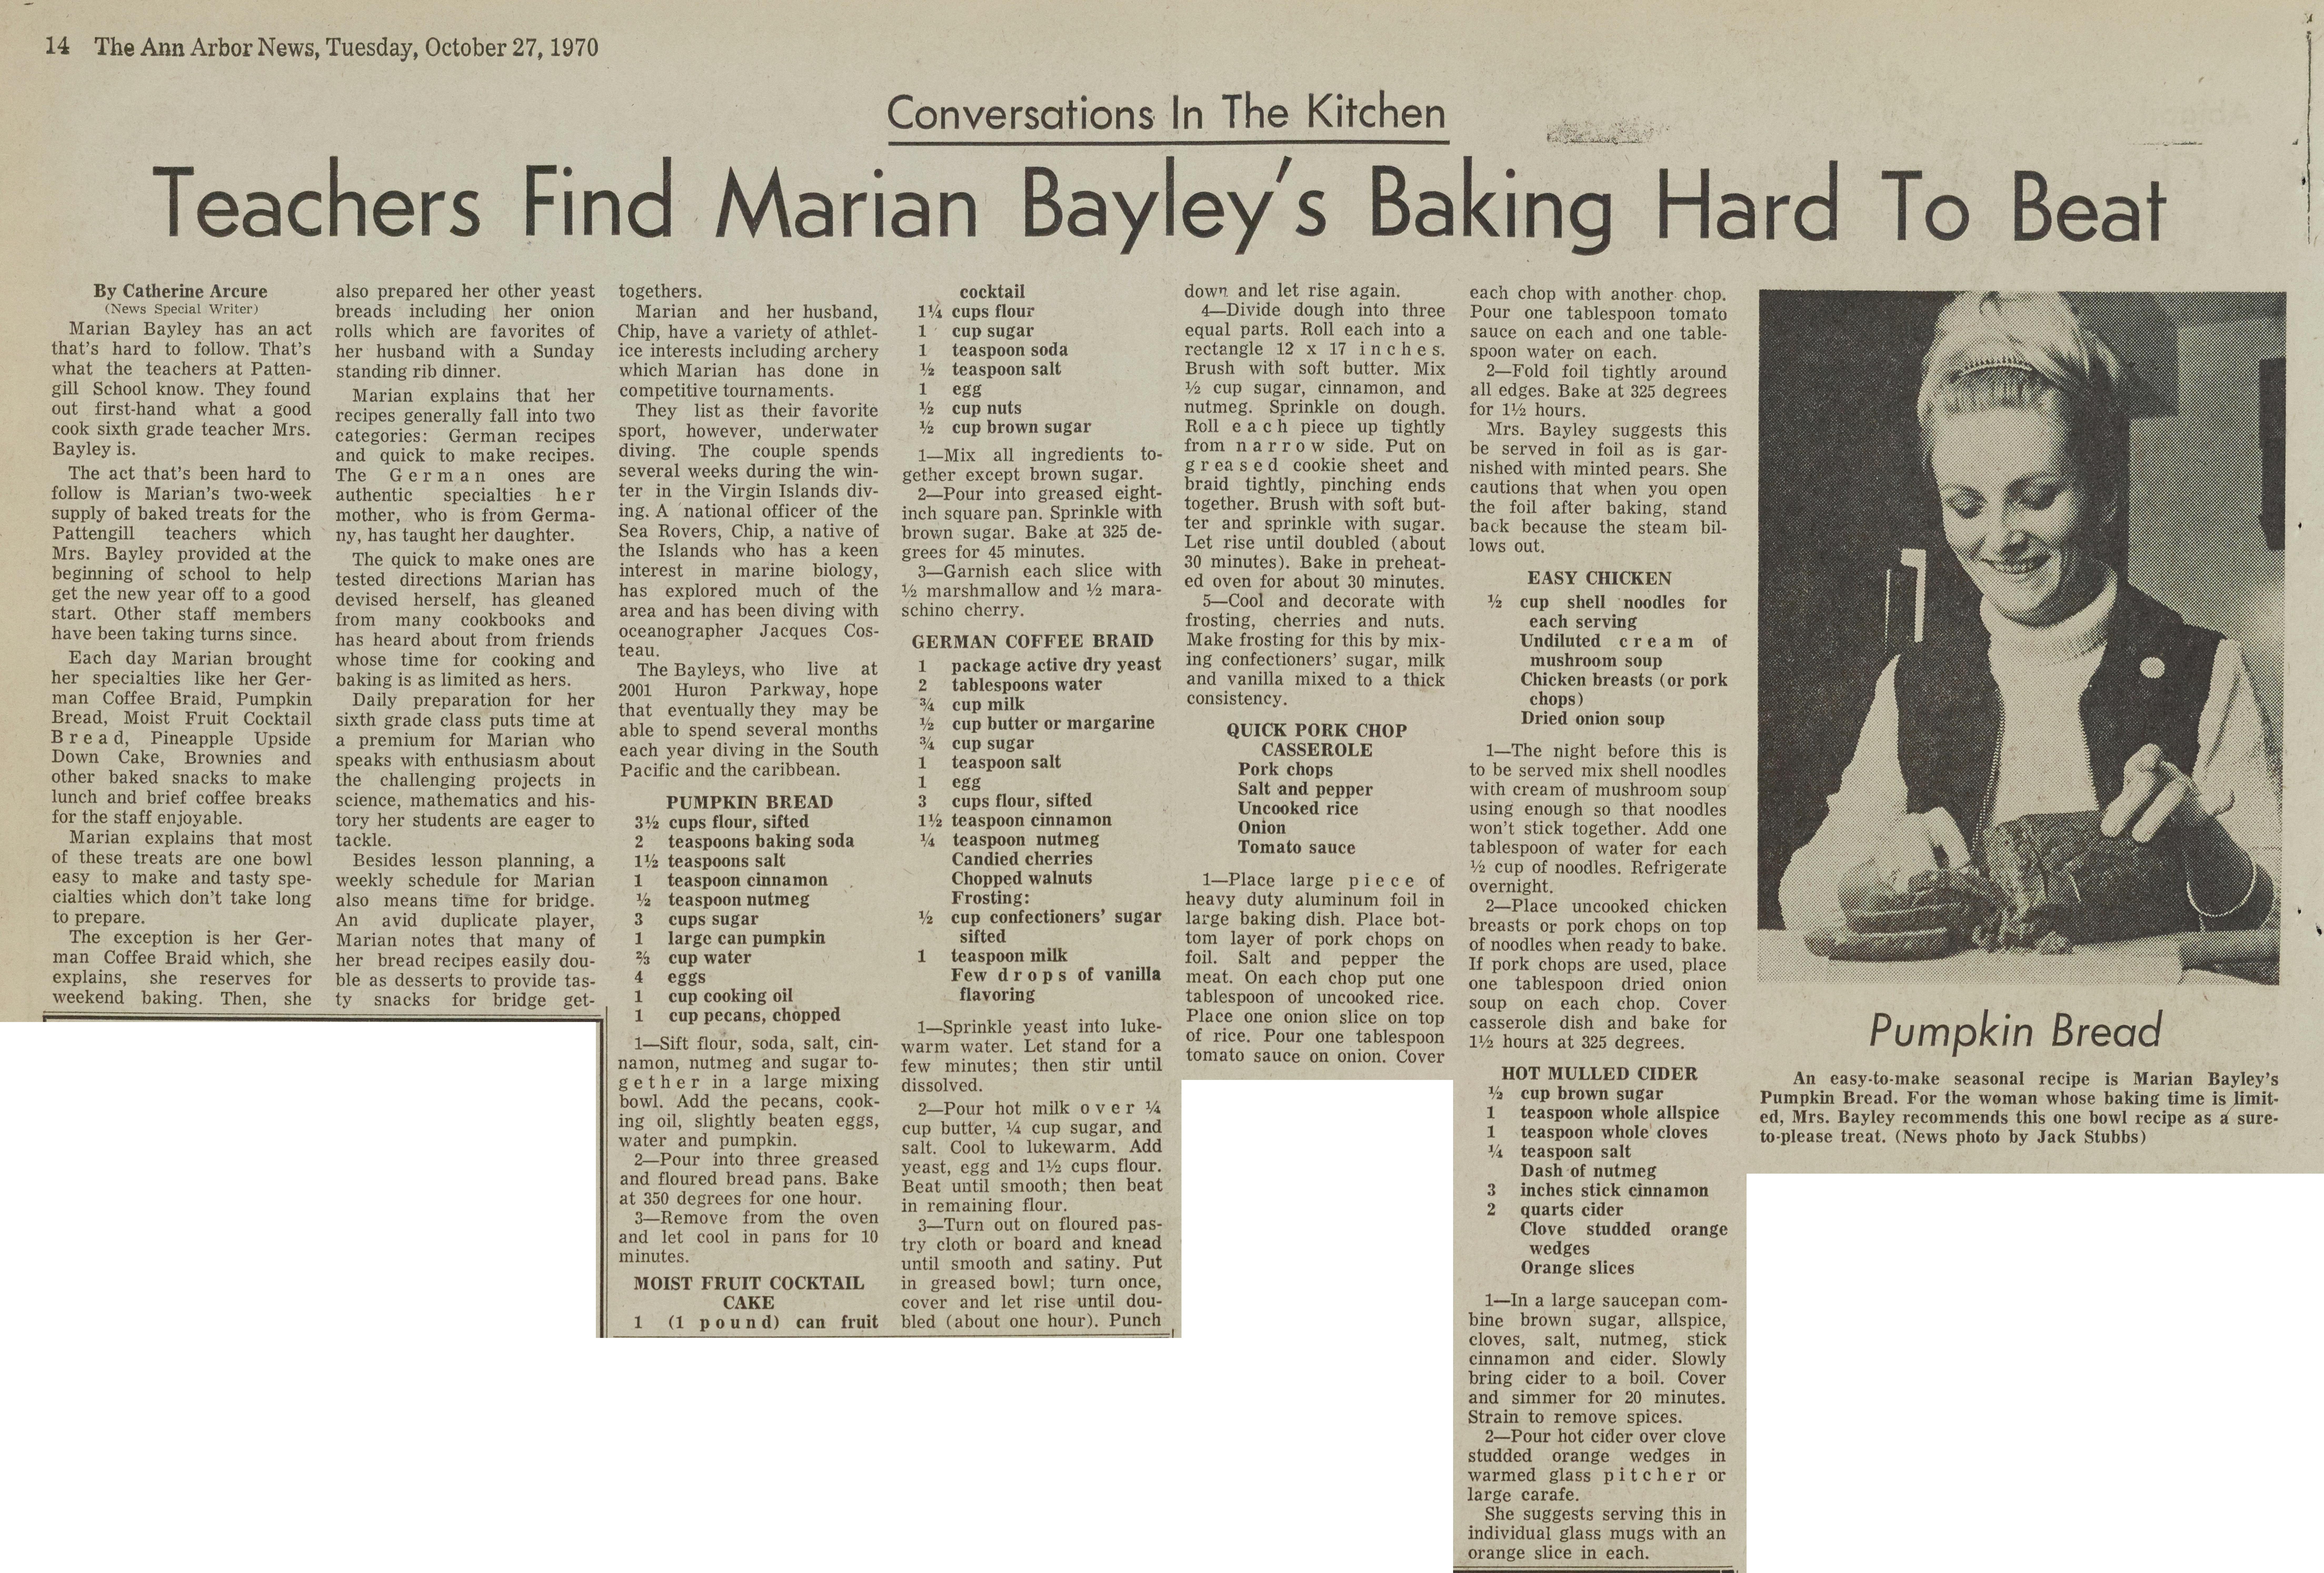 Teachers Find Marian Bayley's Baking Hard To Beat image